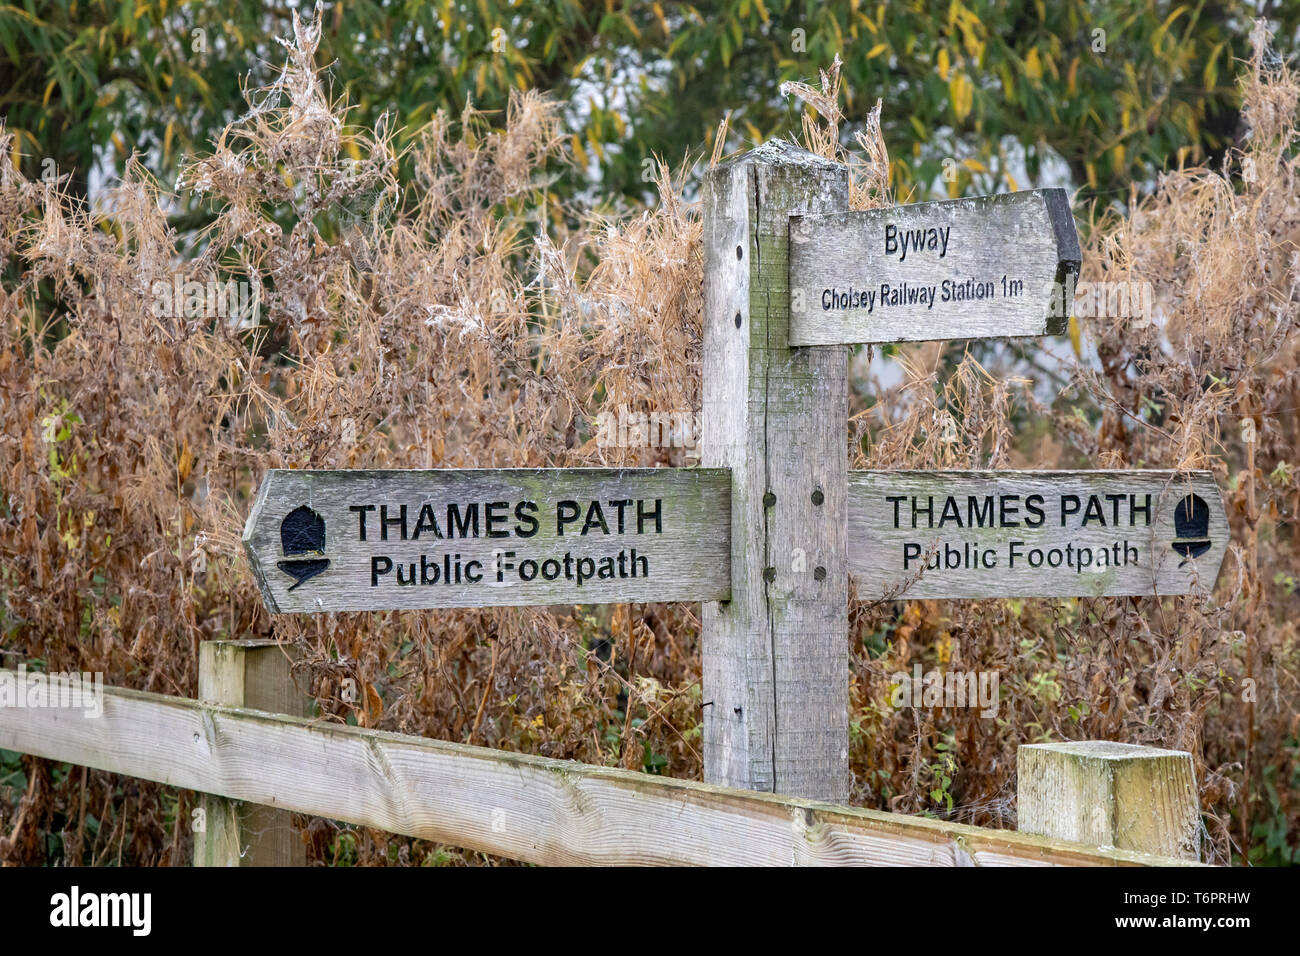 Thames Path sign, Cholsey, South Oxfordshire, England, UK Stock Photo